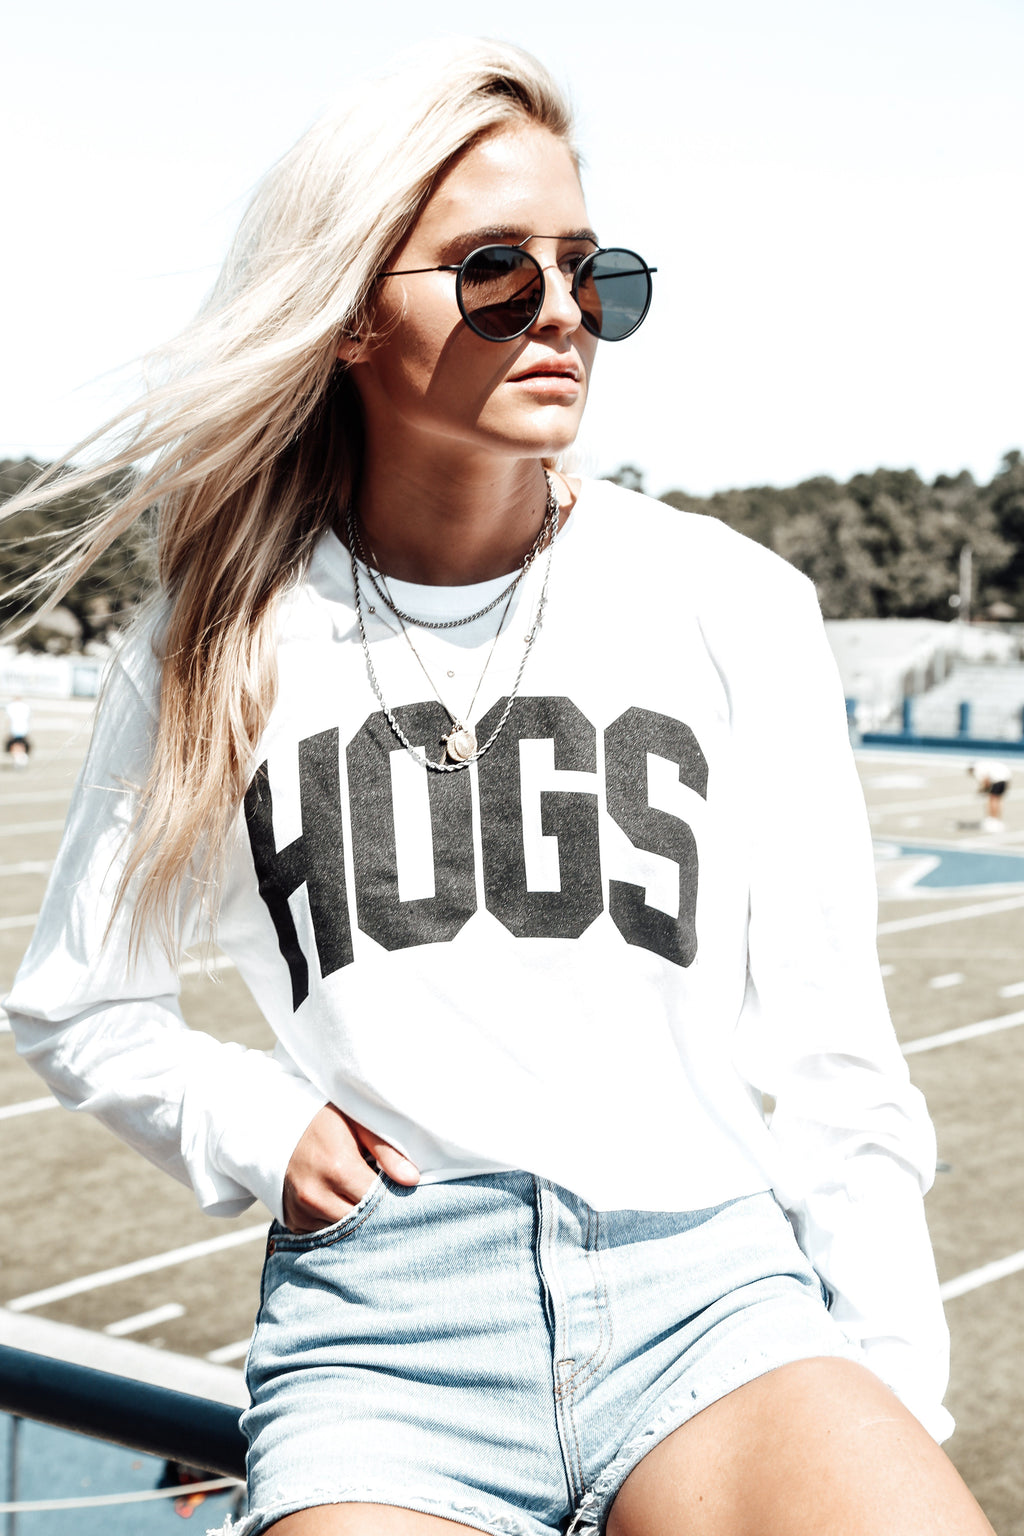 OG HOGS Long Sleeve Tee